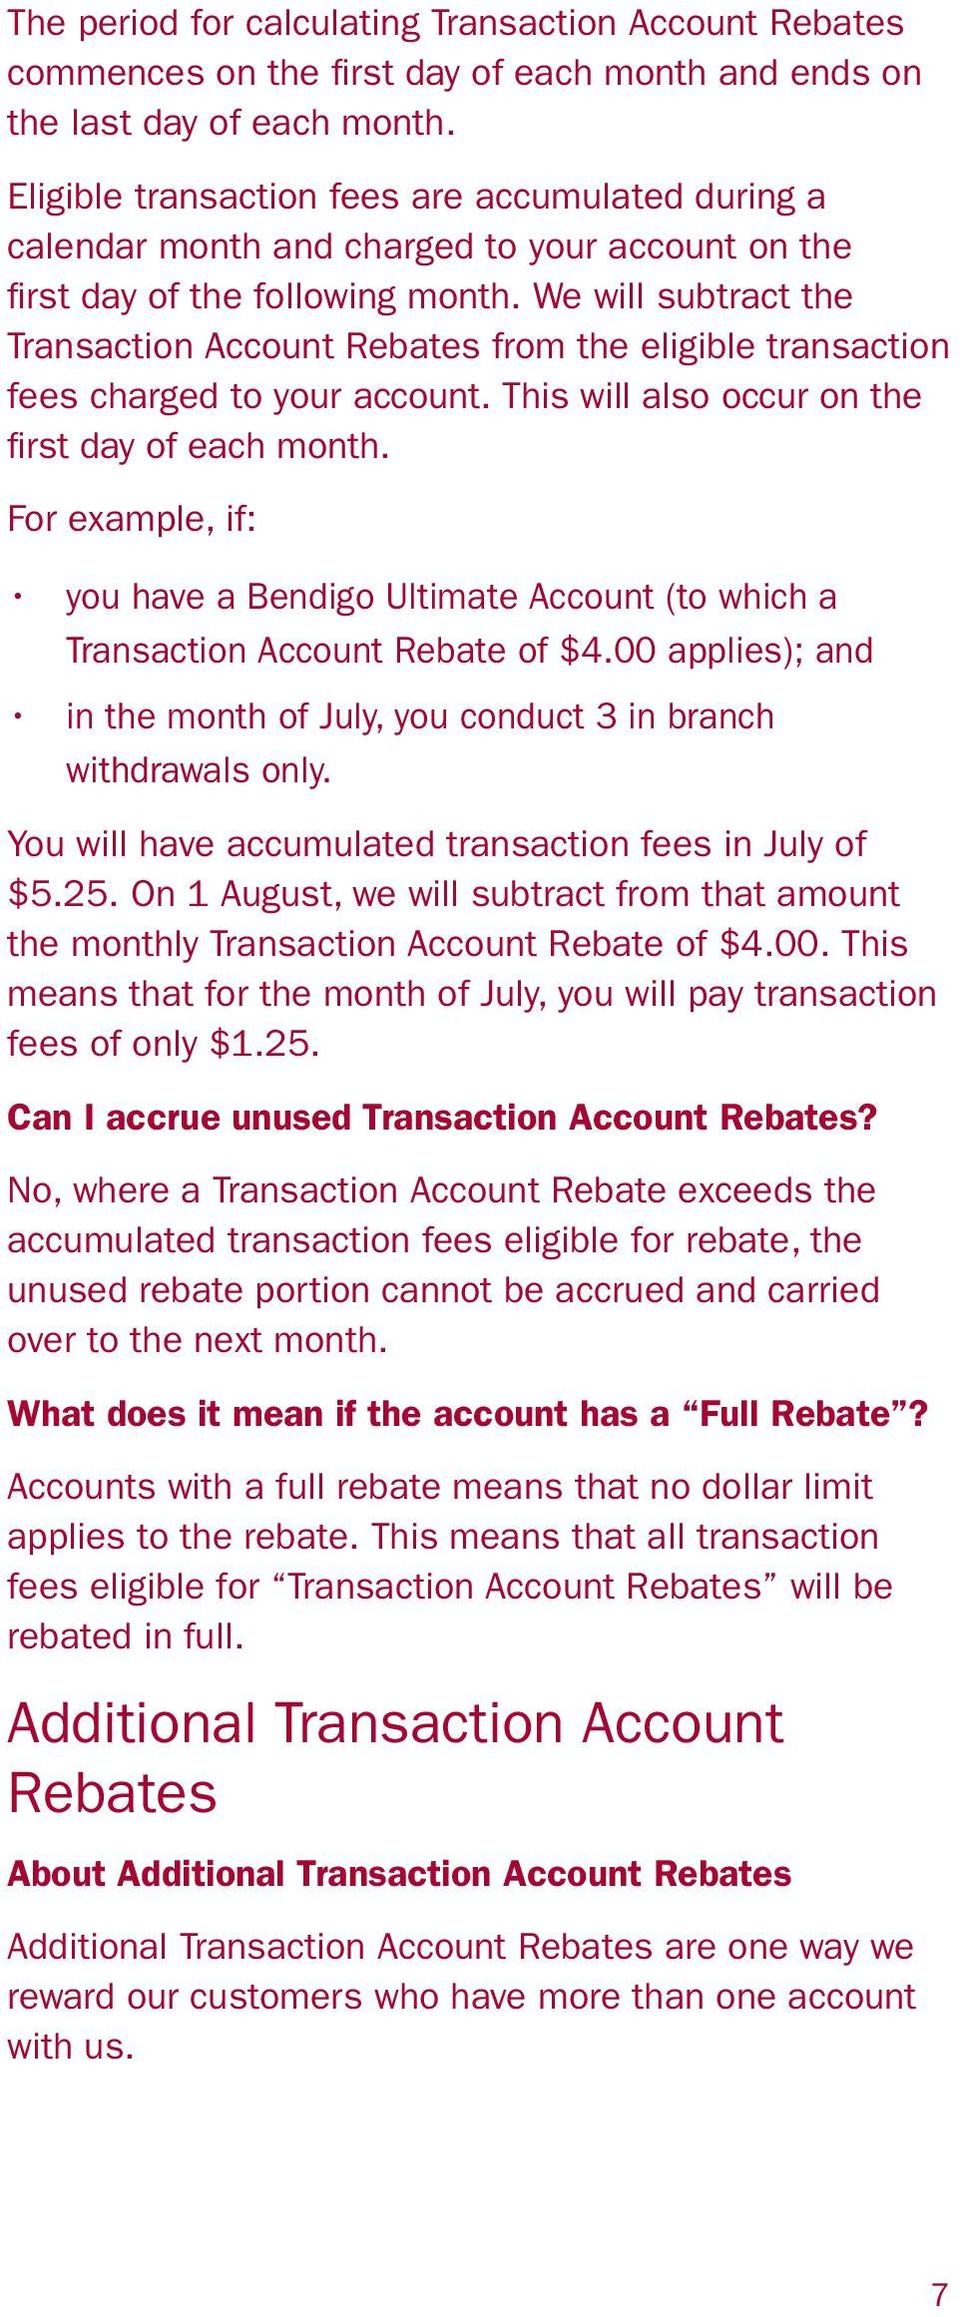 We will subtract the Transaction Account Rebates from the eligible transaction fees charged to your account. This will also occur on the first day of each month.